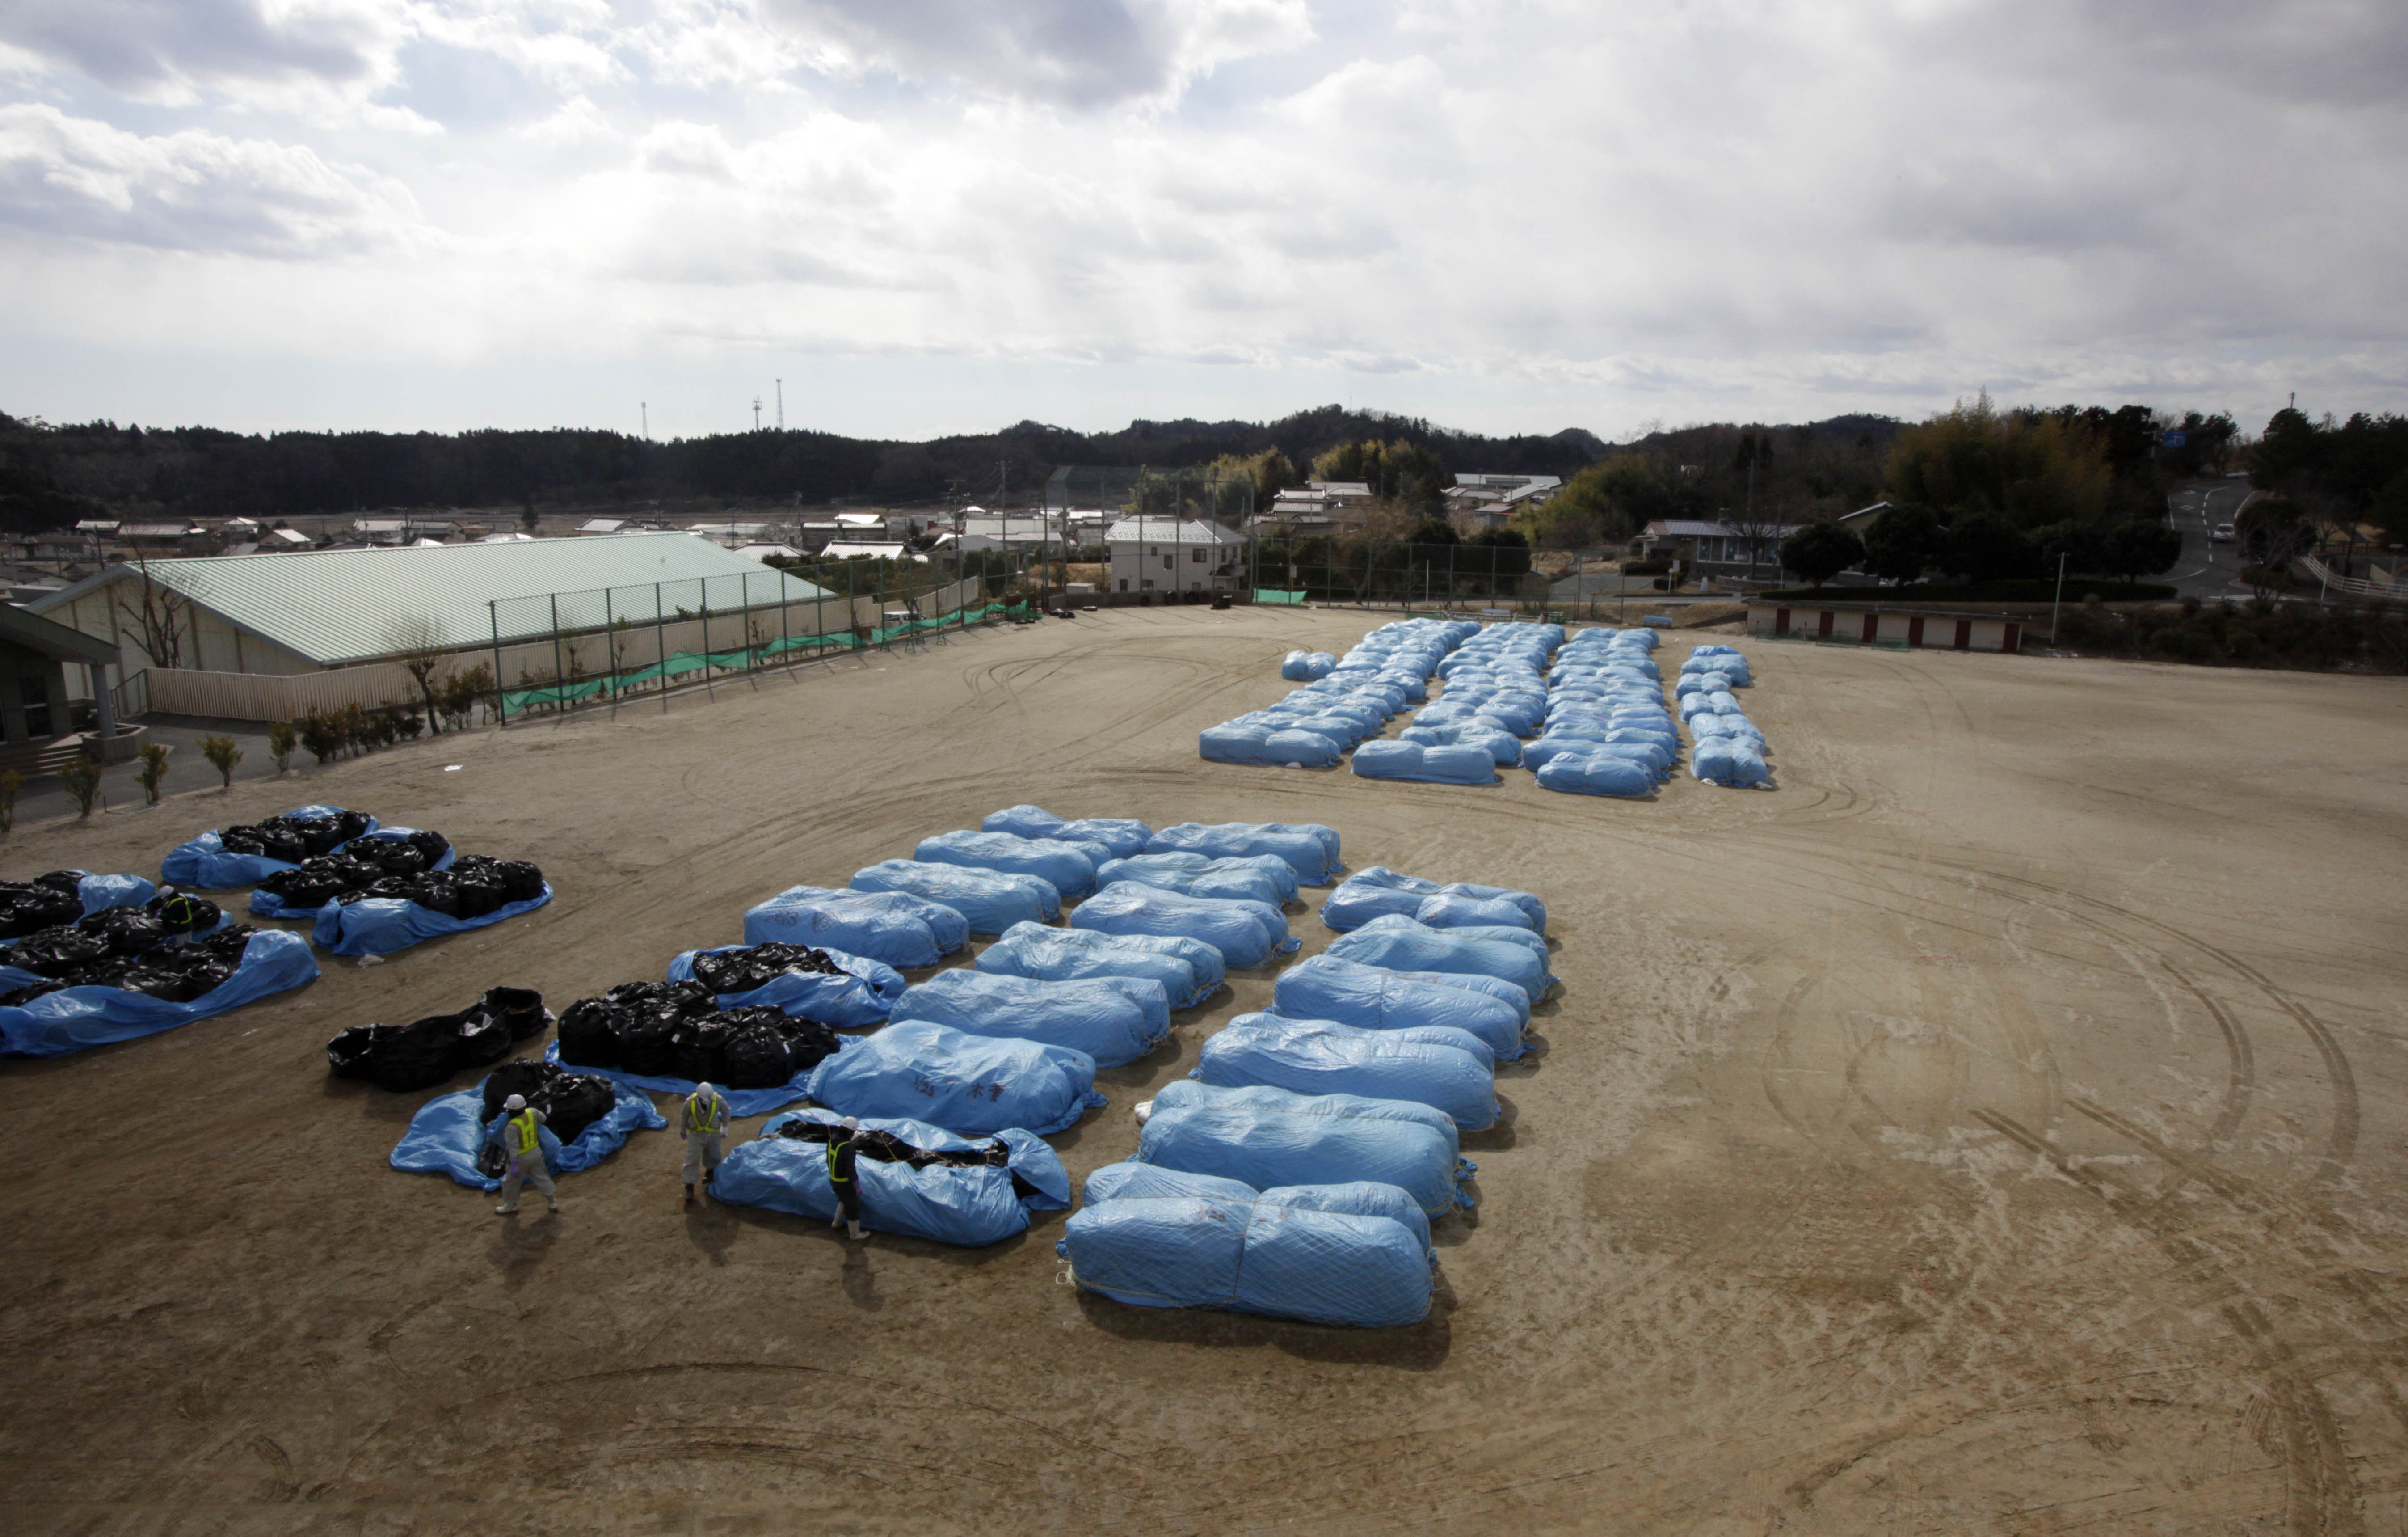 Local media are too vague on Fukushima radiation risk